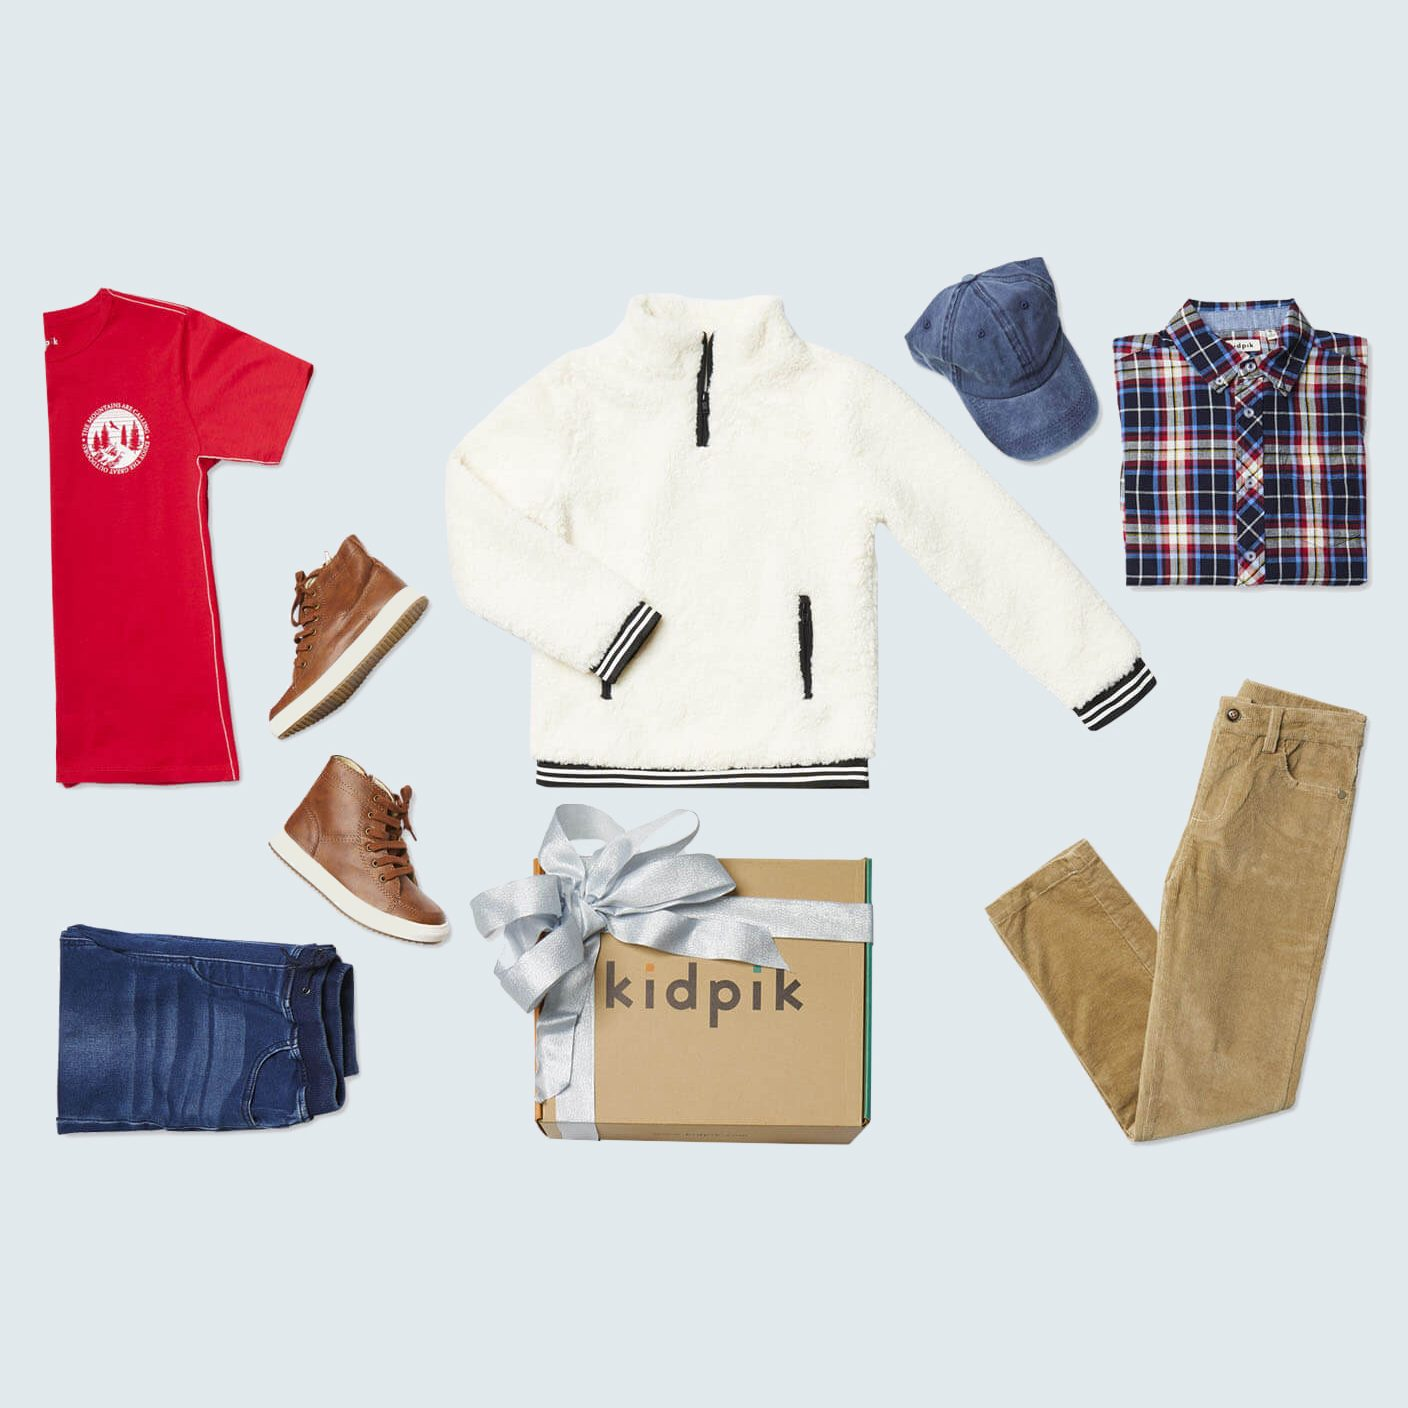 kidpik boys clothes